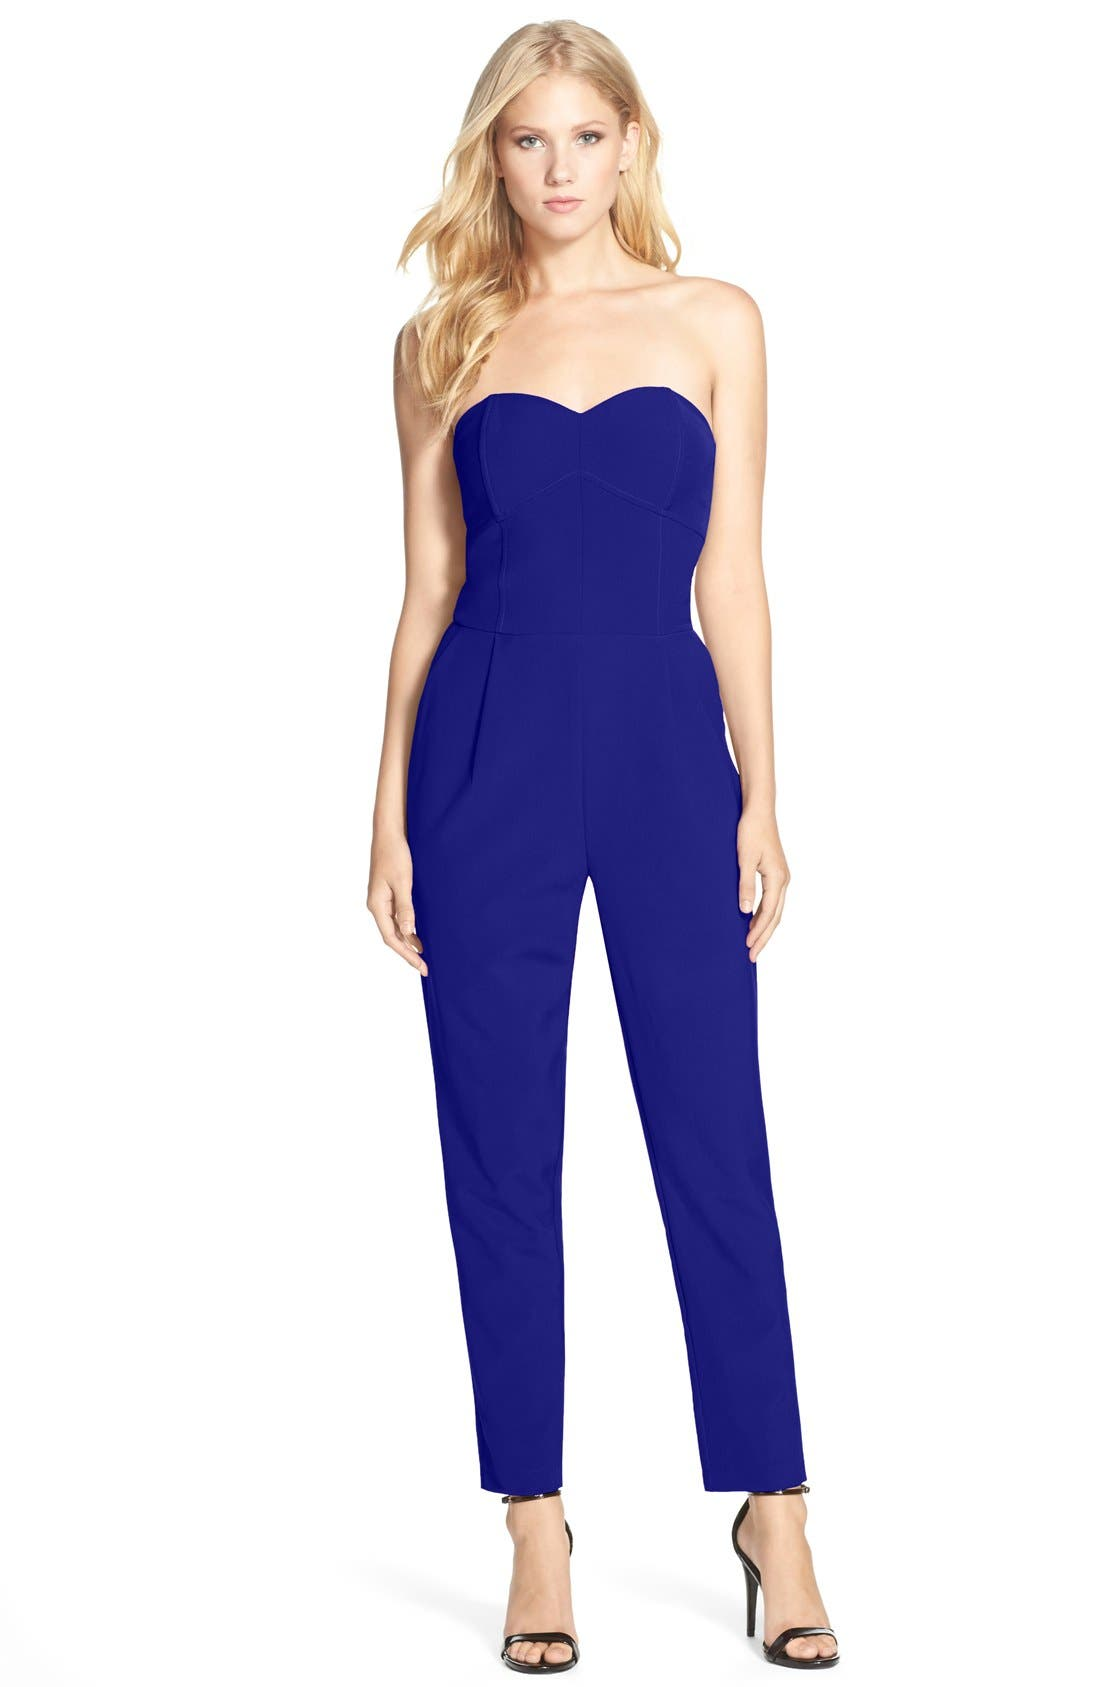 Womens Sexy Tube Top Strapless Split Wide Leg Jumpsuits Rompers Without Belt. from $ 9 99 Prime. out of 5 stars Angashion. Women's High Waist Casual Floral Print Drawstring Wide Leg Pants. from $ 3 99 Prime. out of 5 stars Romwe. Women's Floral Print Cut Out Knot Front Cami Romper.